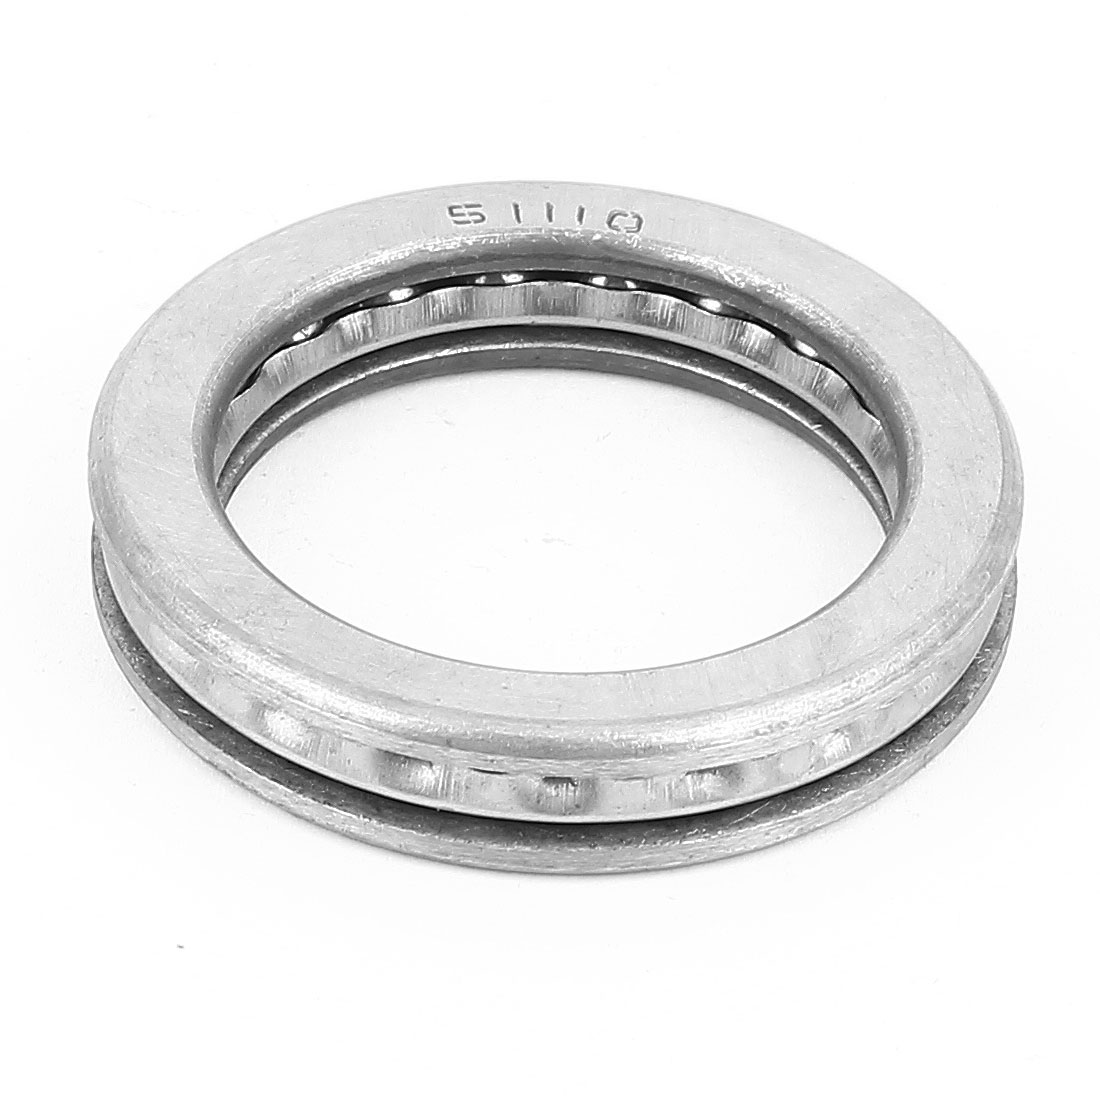 2 Pcs 51110 Axial Ball Single Thrust Bearing 70mm x 50mm x 14mm Silver Gray